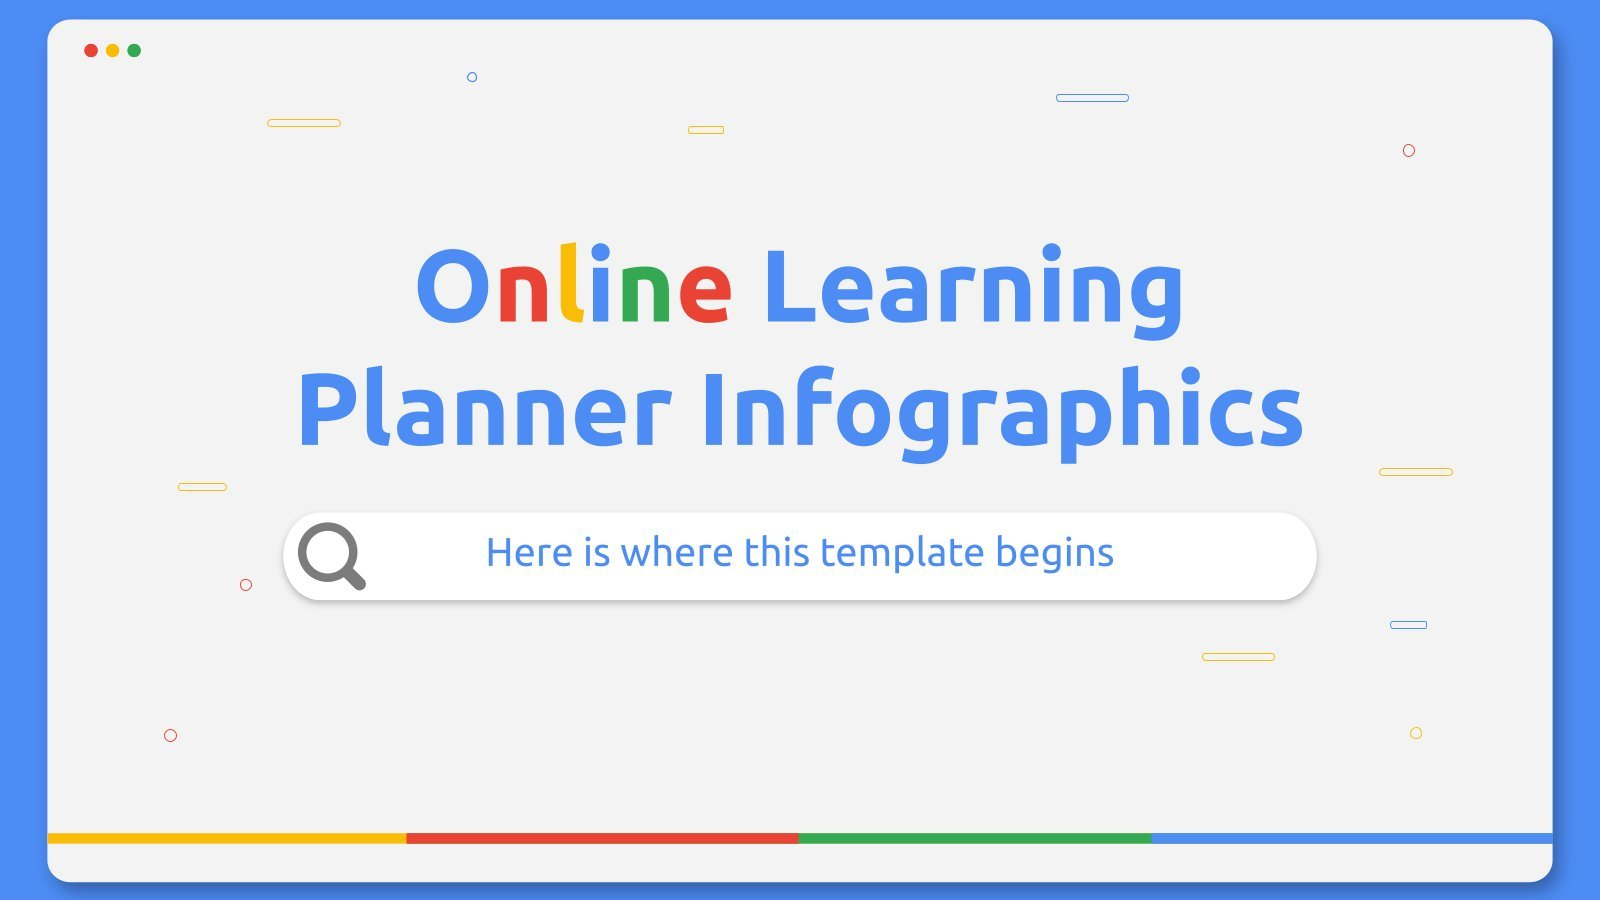 Online Learning Planner Infographics presentation template